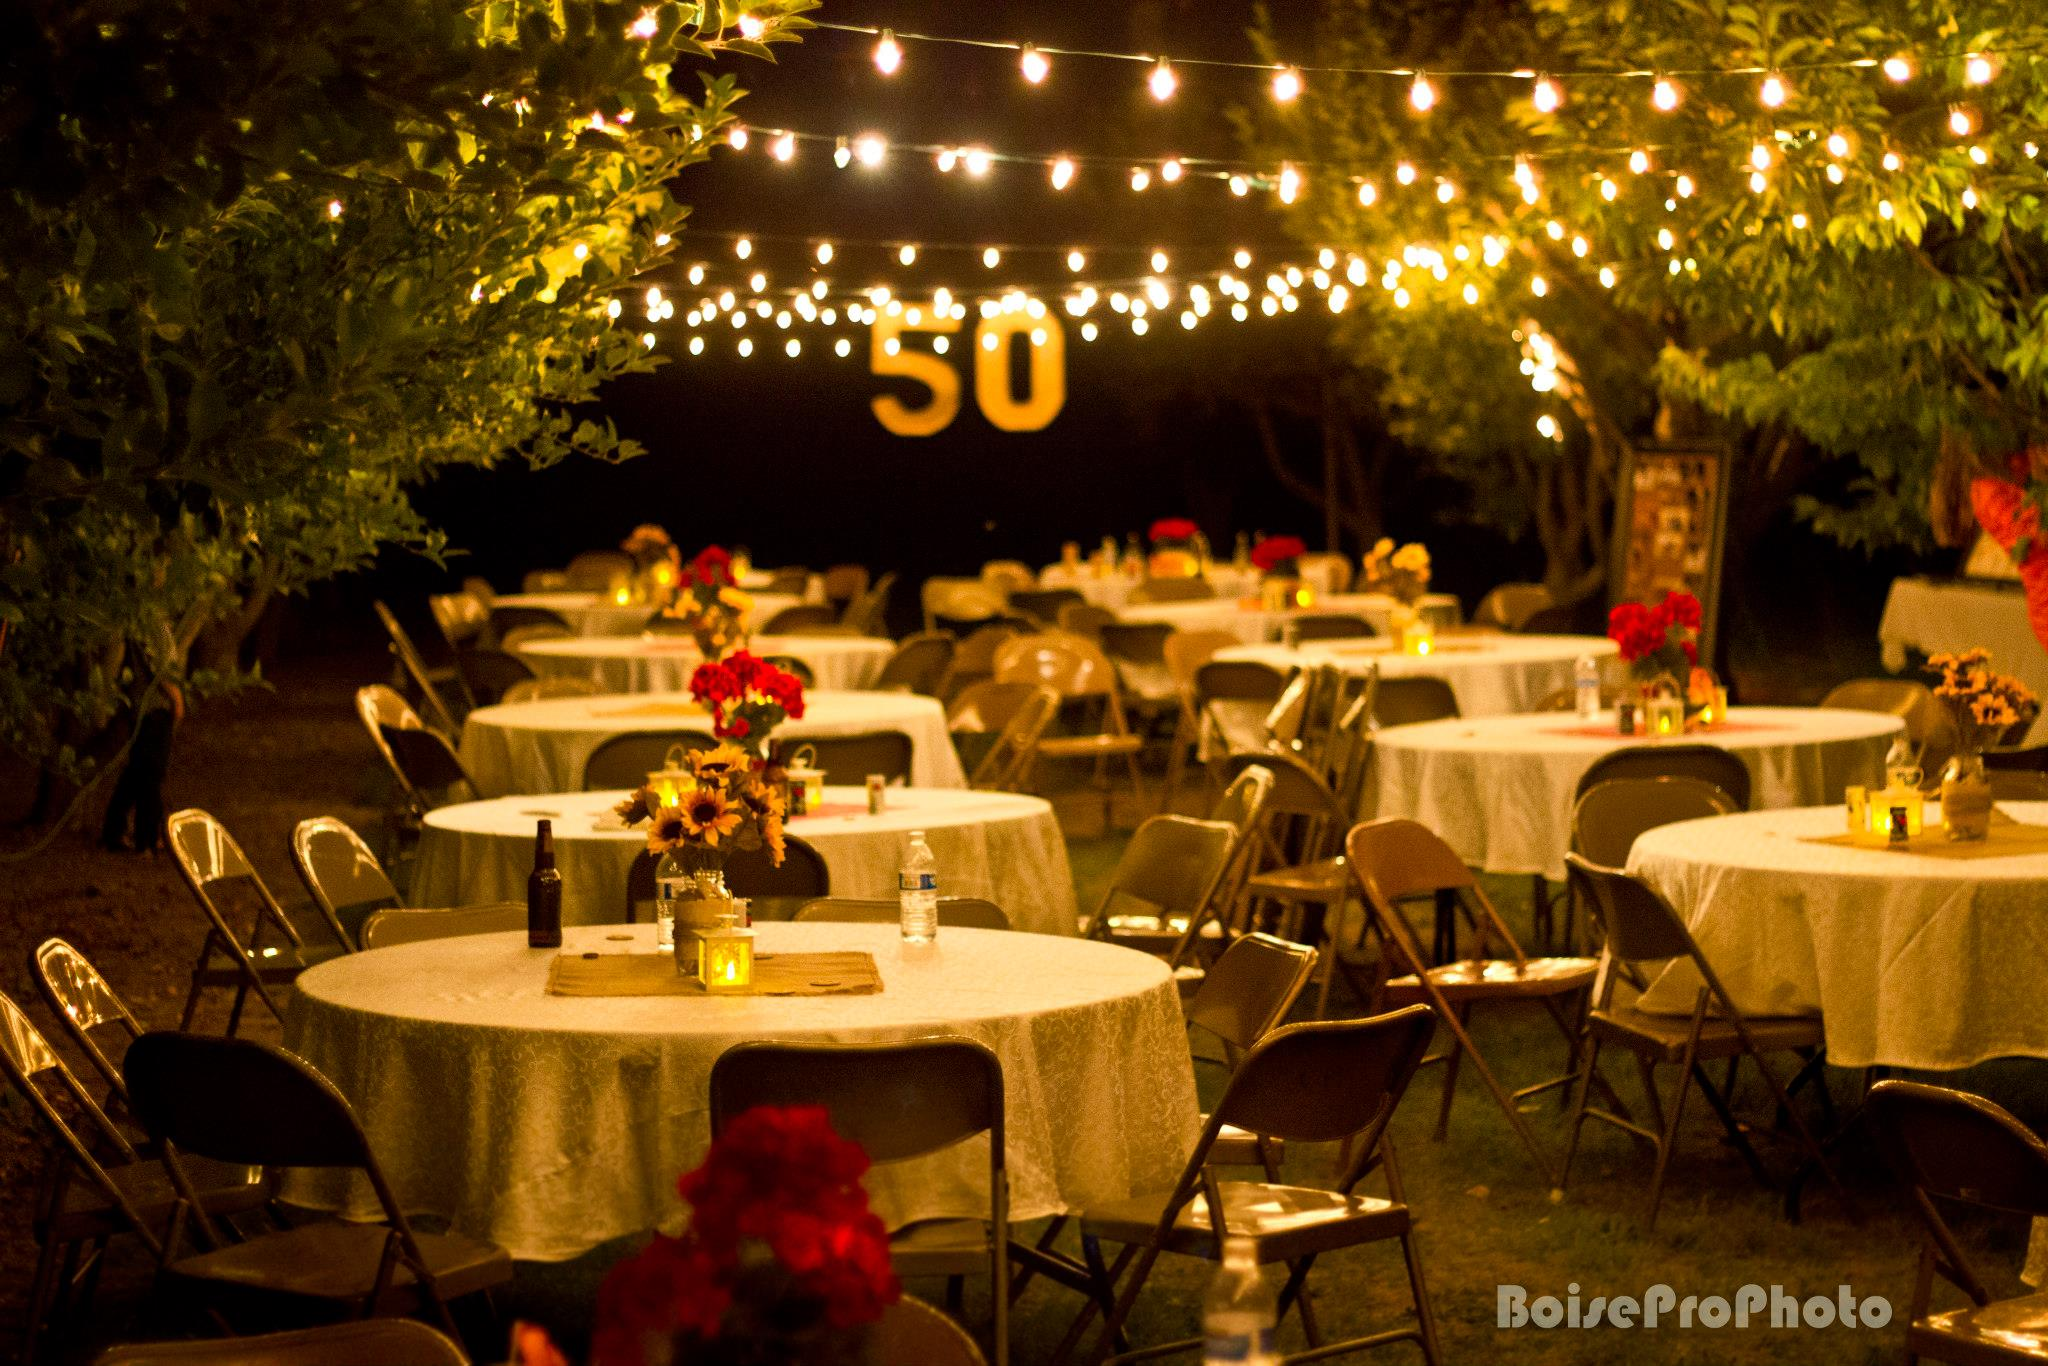 Diy 50th wedding anniversary party from salty bison for Anniversary decoration ideas